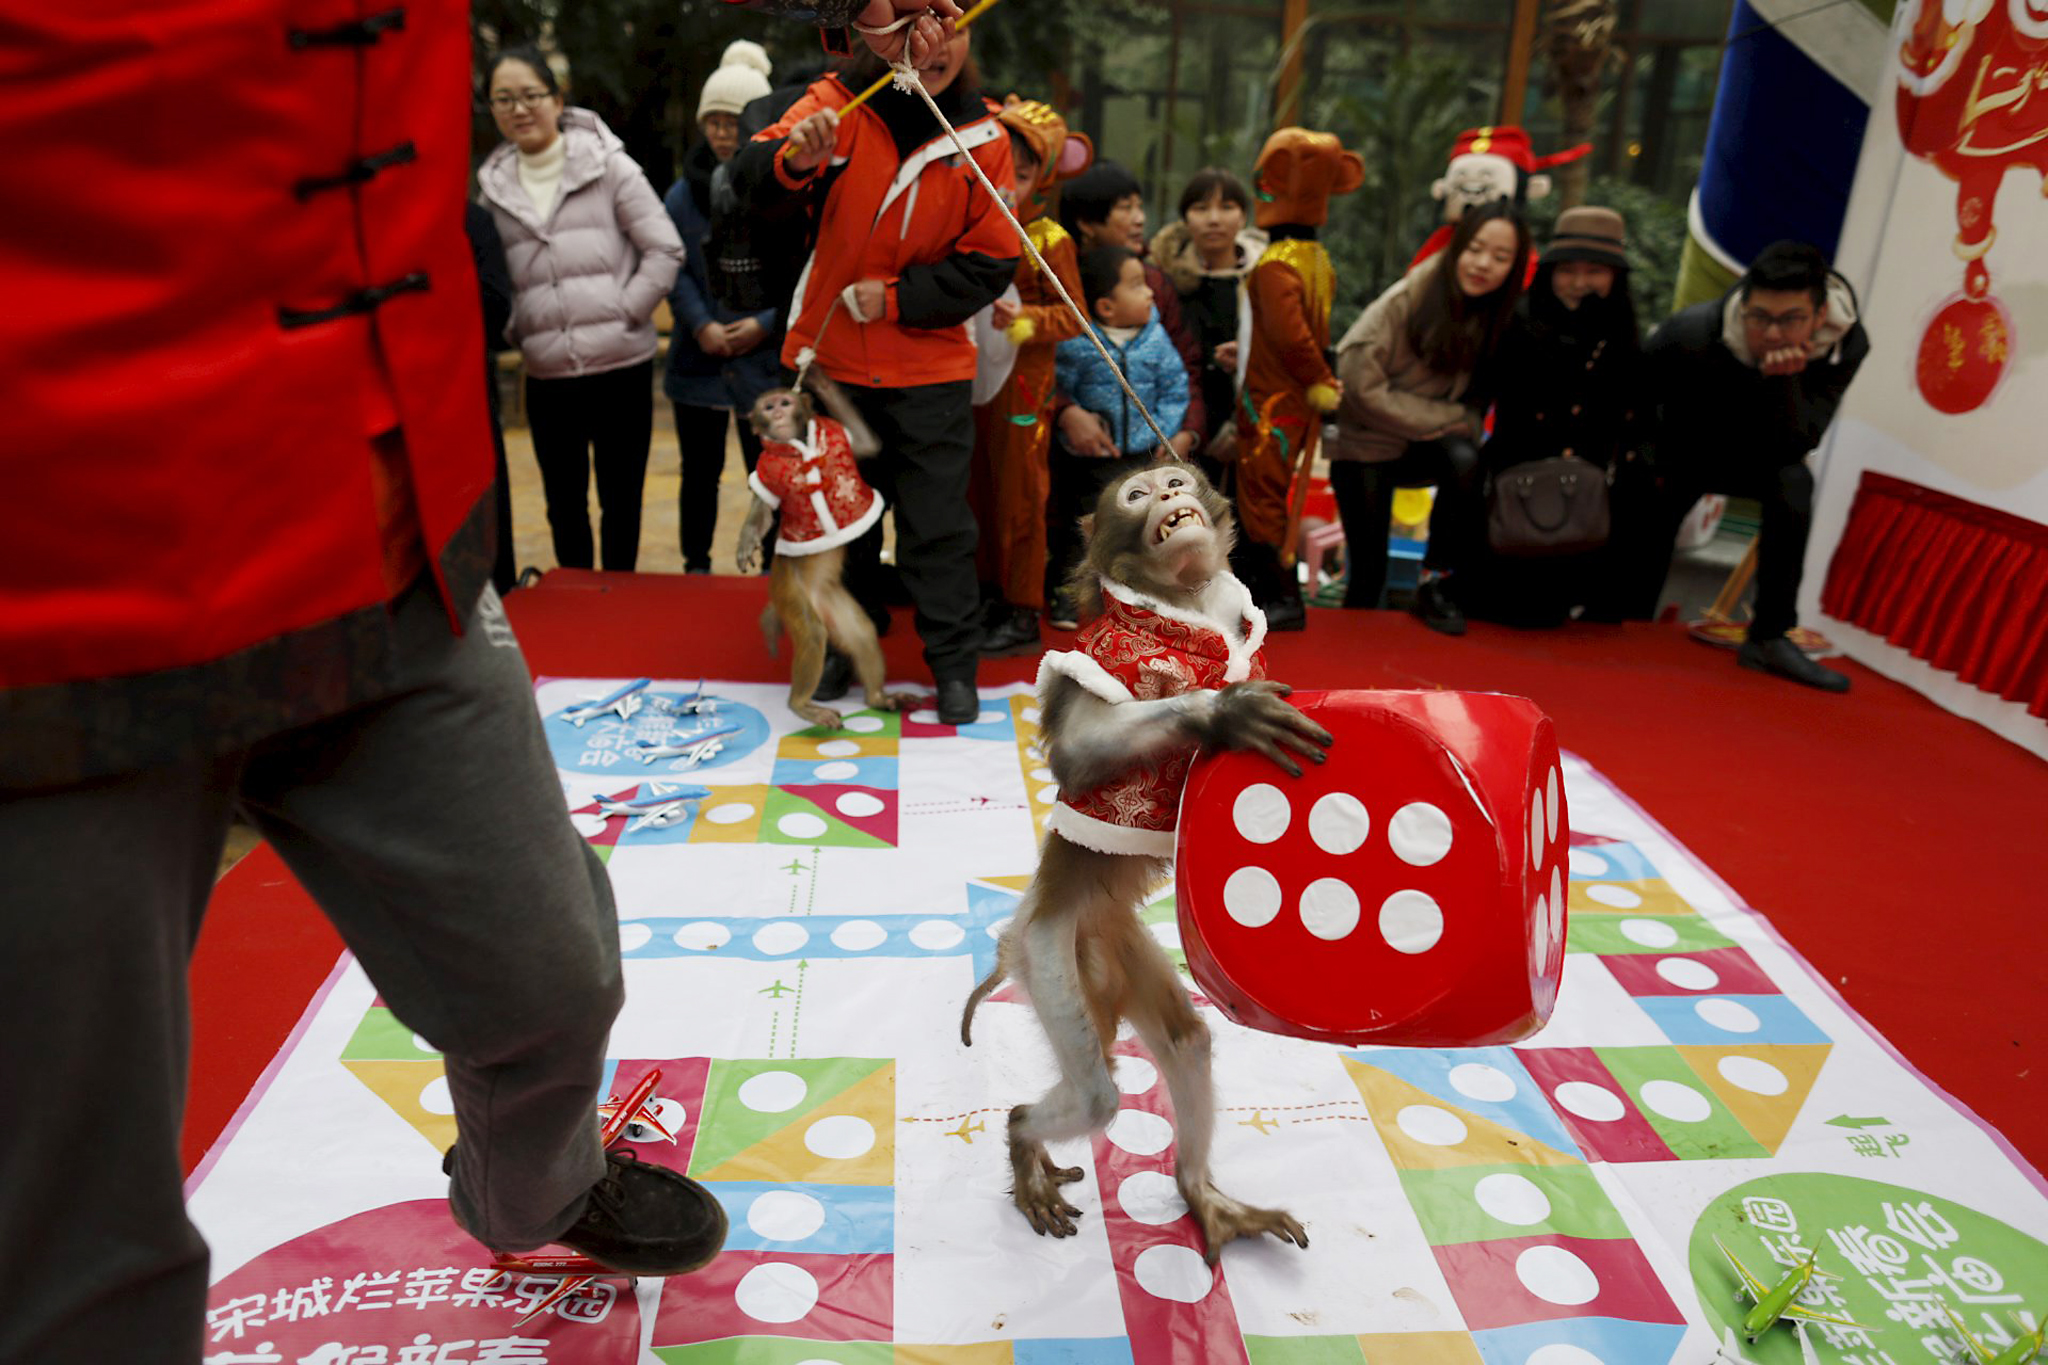 A monkey holds a dice during a performance ahead of the Chinese New Year of the Monkey which falls on February 8, in Hangzhou, Zhejiang province, January 28, 2016. REUTERS/China Daily      TPX IMAGES OF THE DAY     ATTENTION EDITORS - THIS PICTURE WAS PROVIDED BY A THIRD PARTY. THIS PICTURE IS DISTRIBUTED EXACTLY AS RECEIVED BY REUTERS, AS A SERVICE TO CLIENTS. CHINA OUT. NO COMMERCIAL OR EDITORIAL SALES IN CHINA.